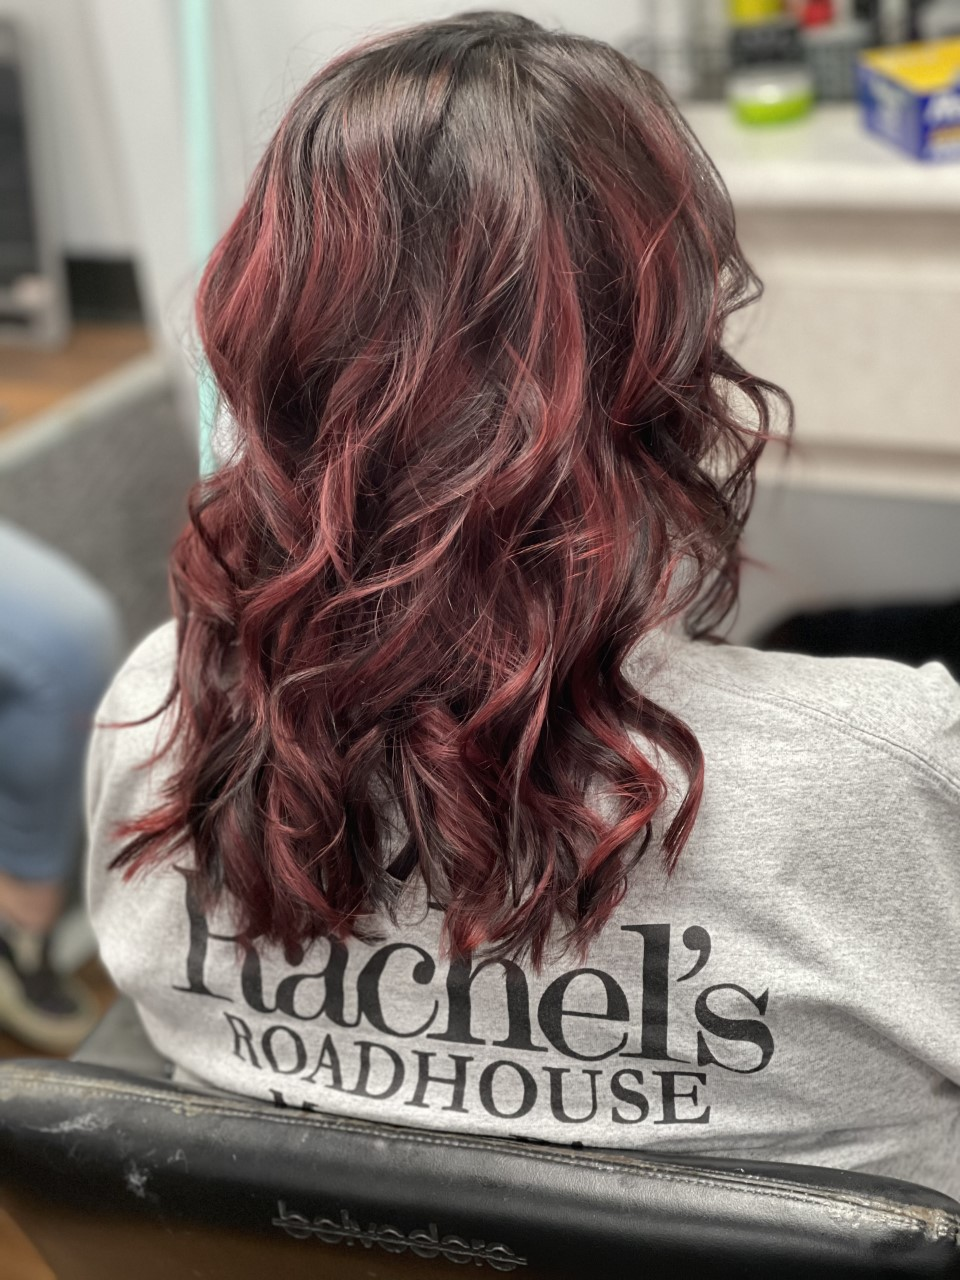 Black and Red balayage (done by Kayla)